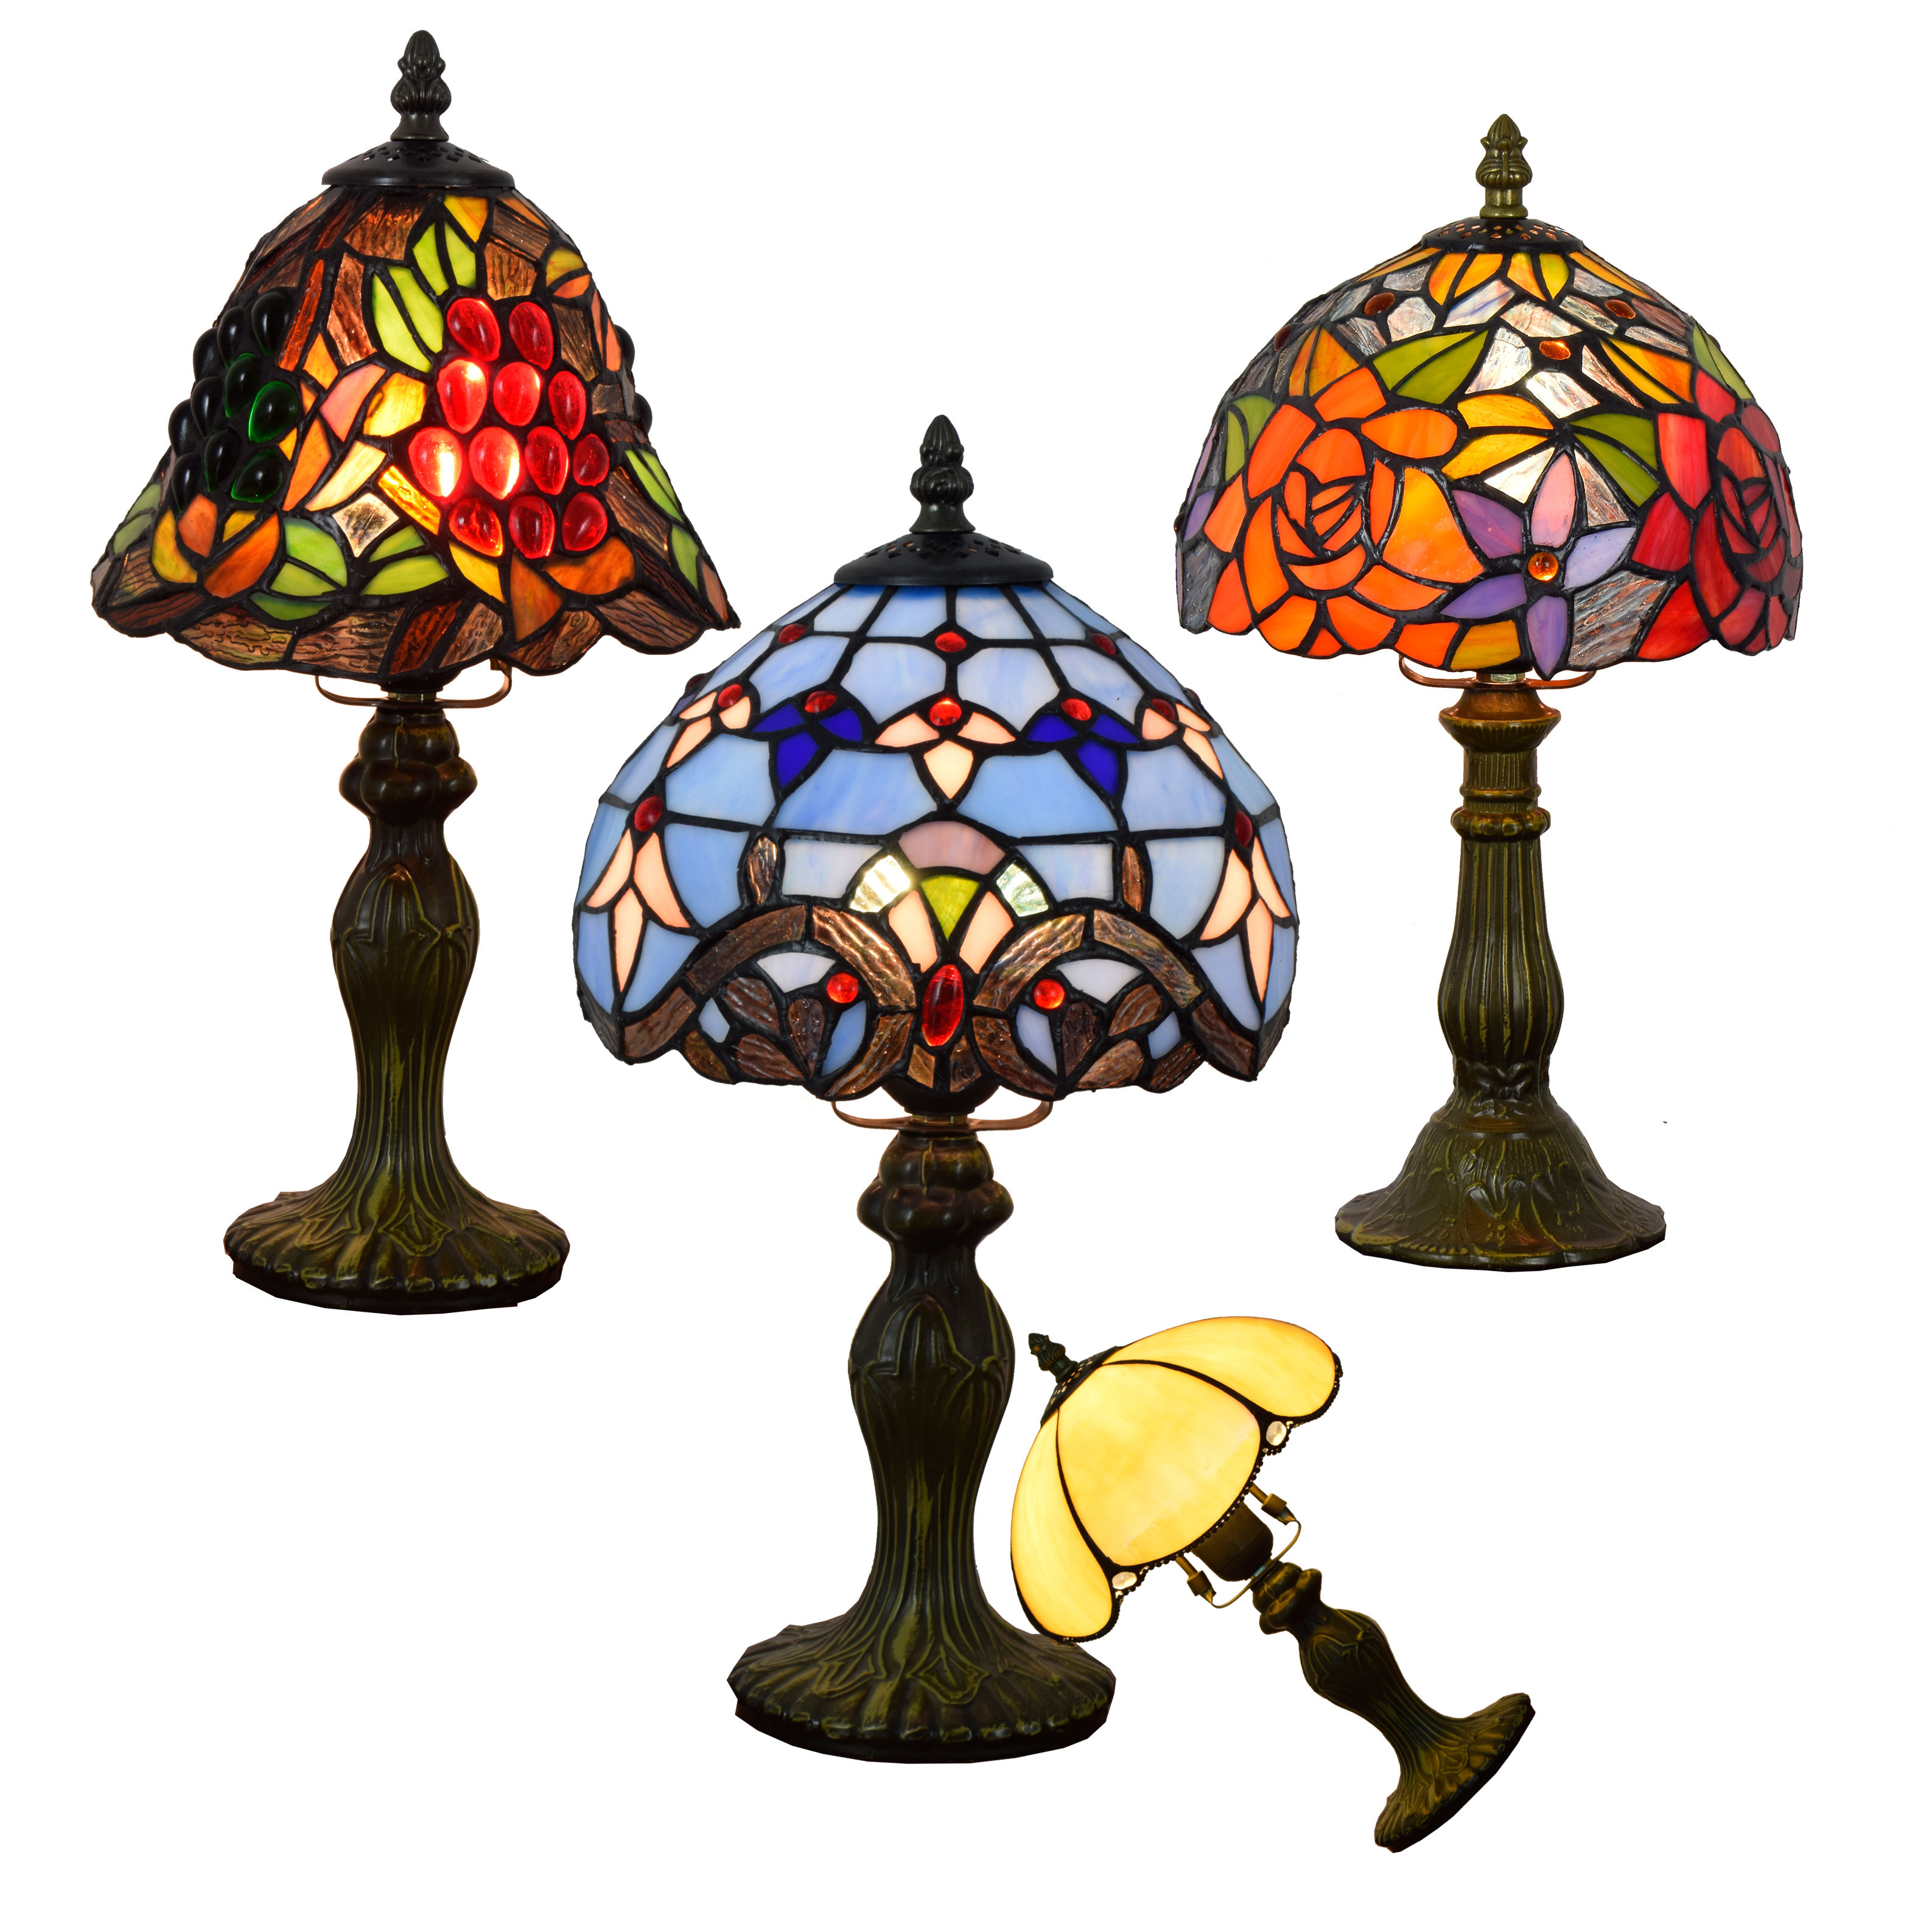 8 inch Retro creativity stained glass lampen bedside desk lamp bar study roses Baroque grapes night light tiffany table lamps